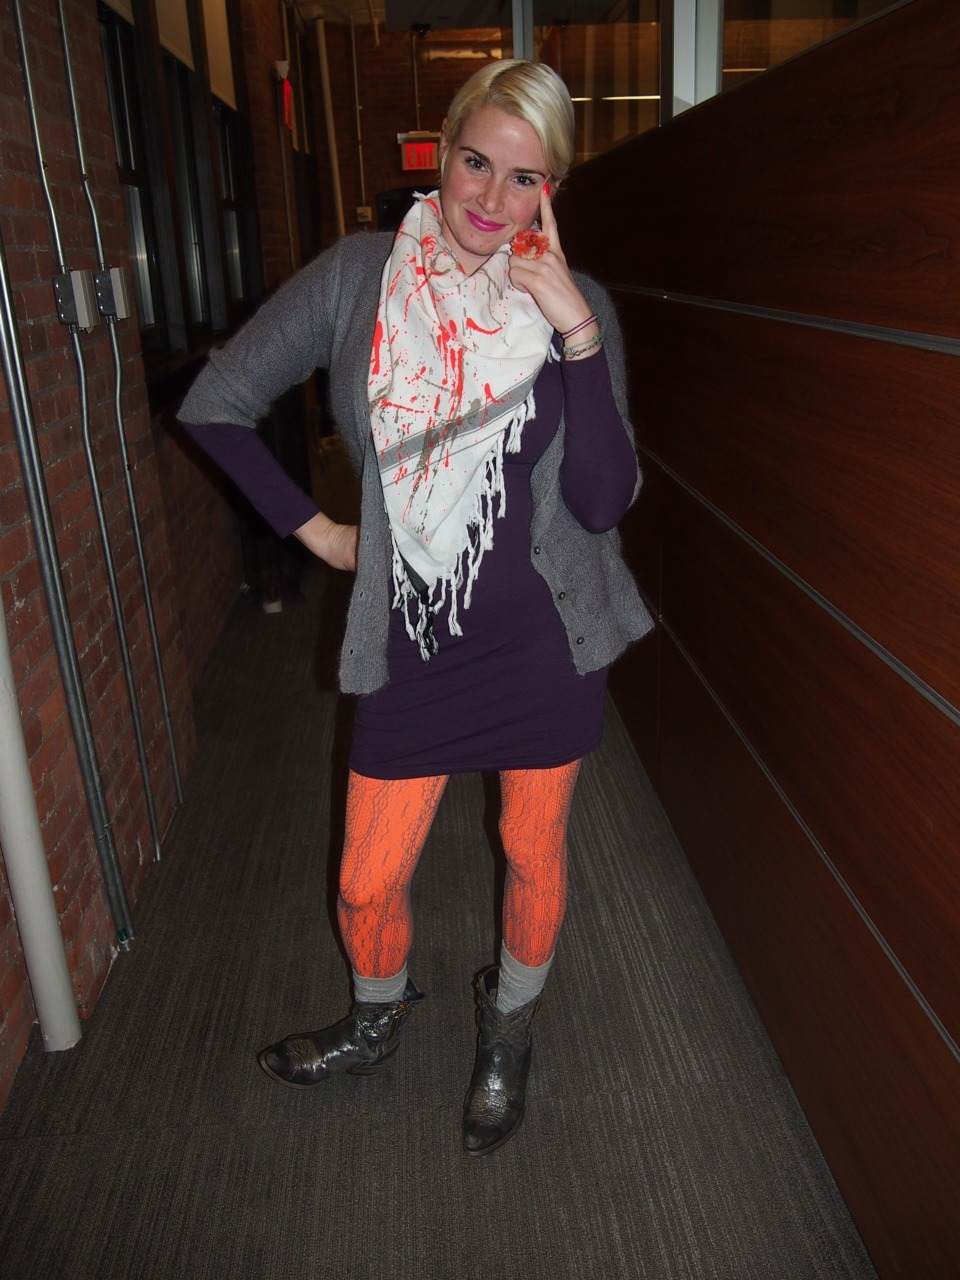 DOING SOME NEON ORANGE-ING, UGH NICE FACE IDIOT. (AWESOME SCARF WAS A GIFT FROM THIS PERSON, made by leigh&luca)